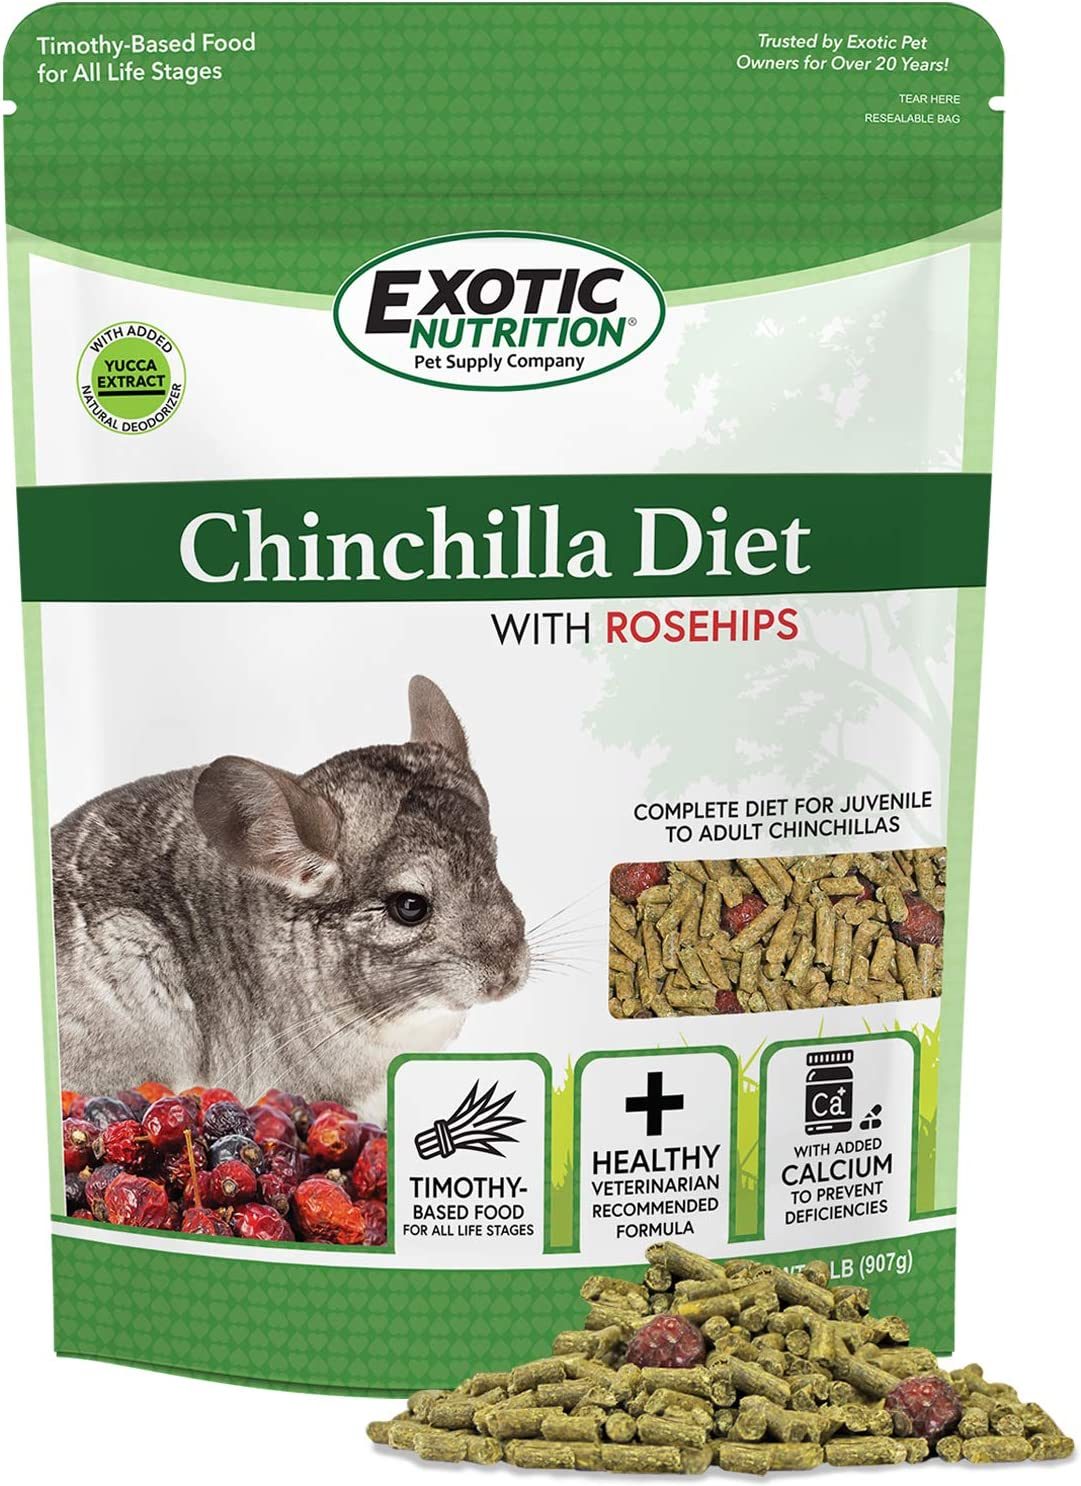 Chinchilla Diet with Rose Hips - Nutritionally Complete Natural Healthy Pellet Food for Pet Chinchillas (2 lb.)